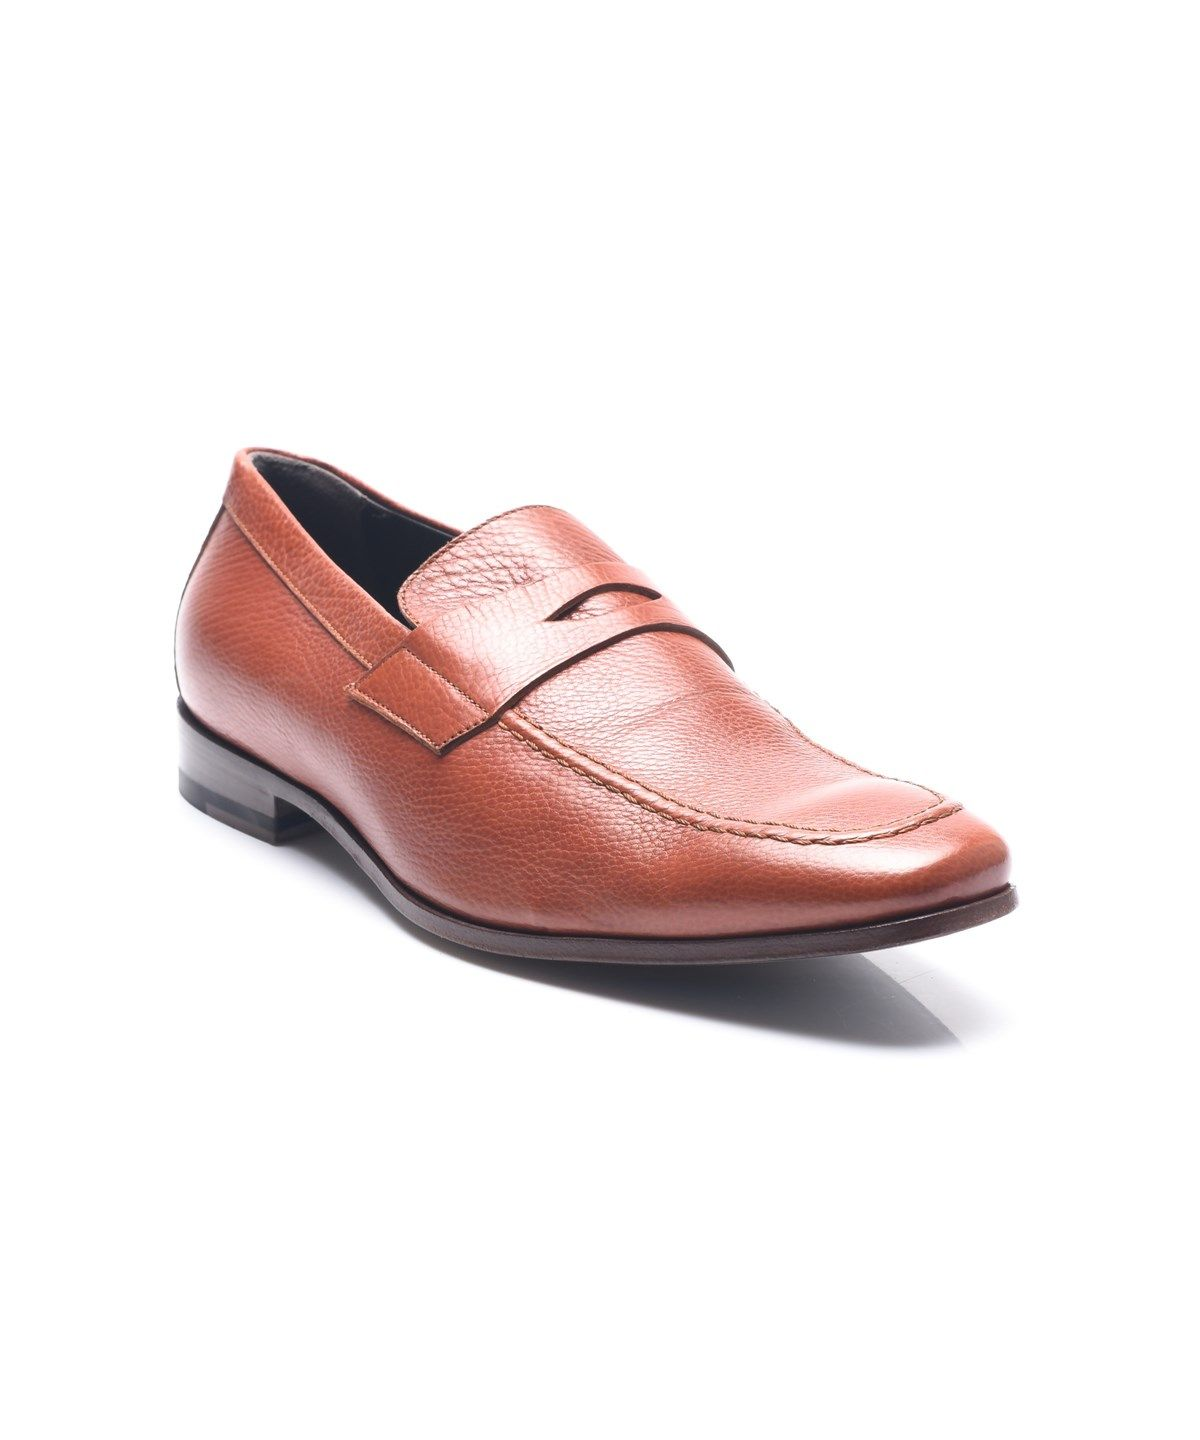 b8036dbbb5b BRUNO MAGLI BRUNO MAGLI MEN S LEATHER MEDORDO PENNY LOAFERS SHOES BROWN .   brunomagli  shoes  loafers